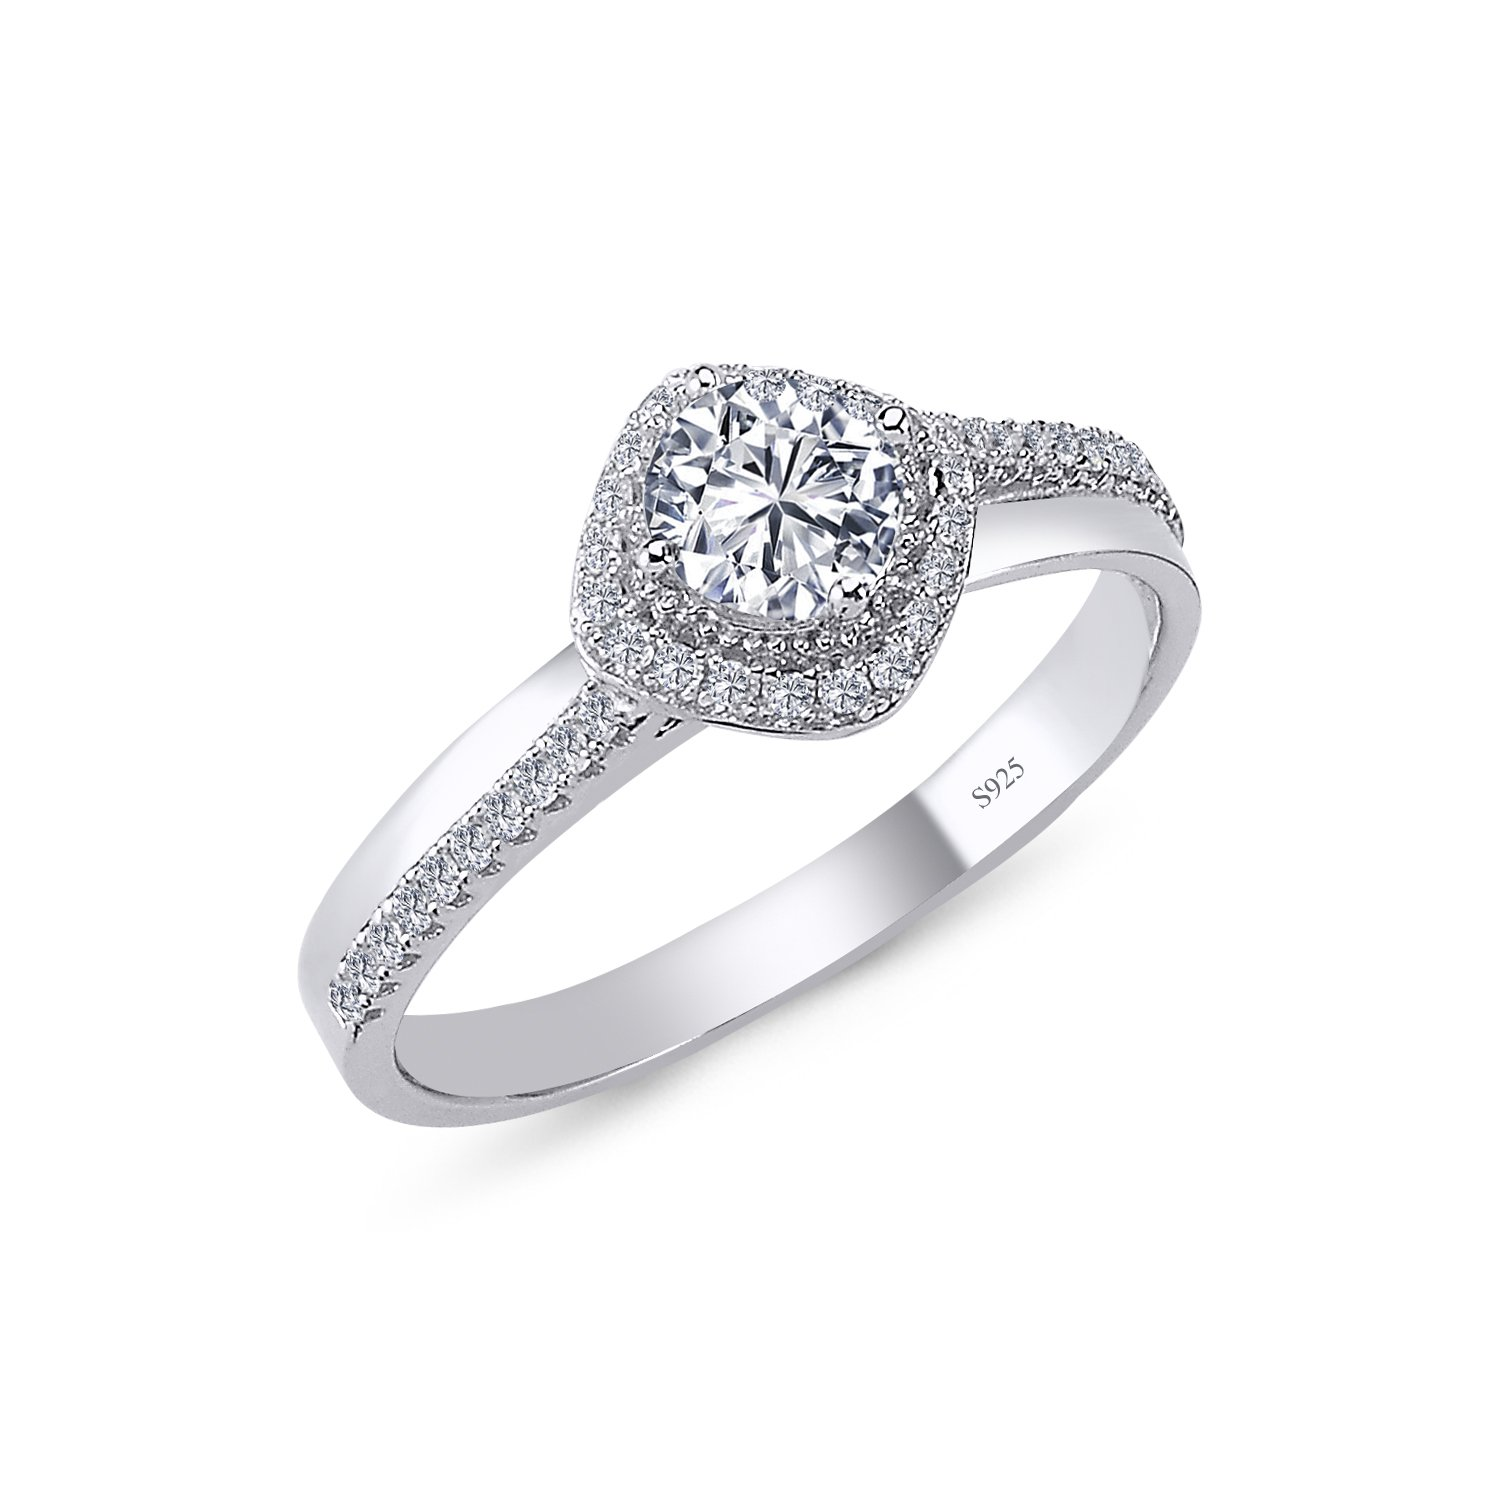 925 Solid Sterling Silver 9MM Cushion Halo AAAAA+ Gem Grade Quality ROUND BRILLIANT Cut Total 1.00 CARAT Bridal Sets Anniversary Promise Engagement Wedding CZ Ring Comfort Fit and Rhodium Plated